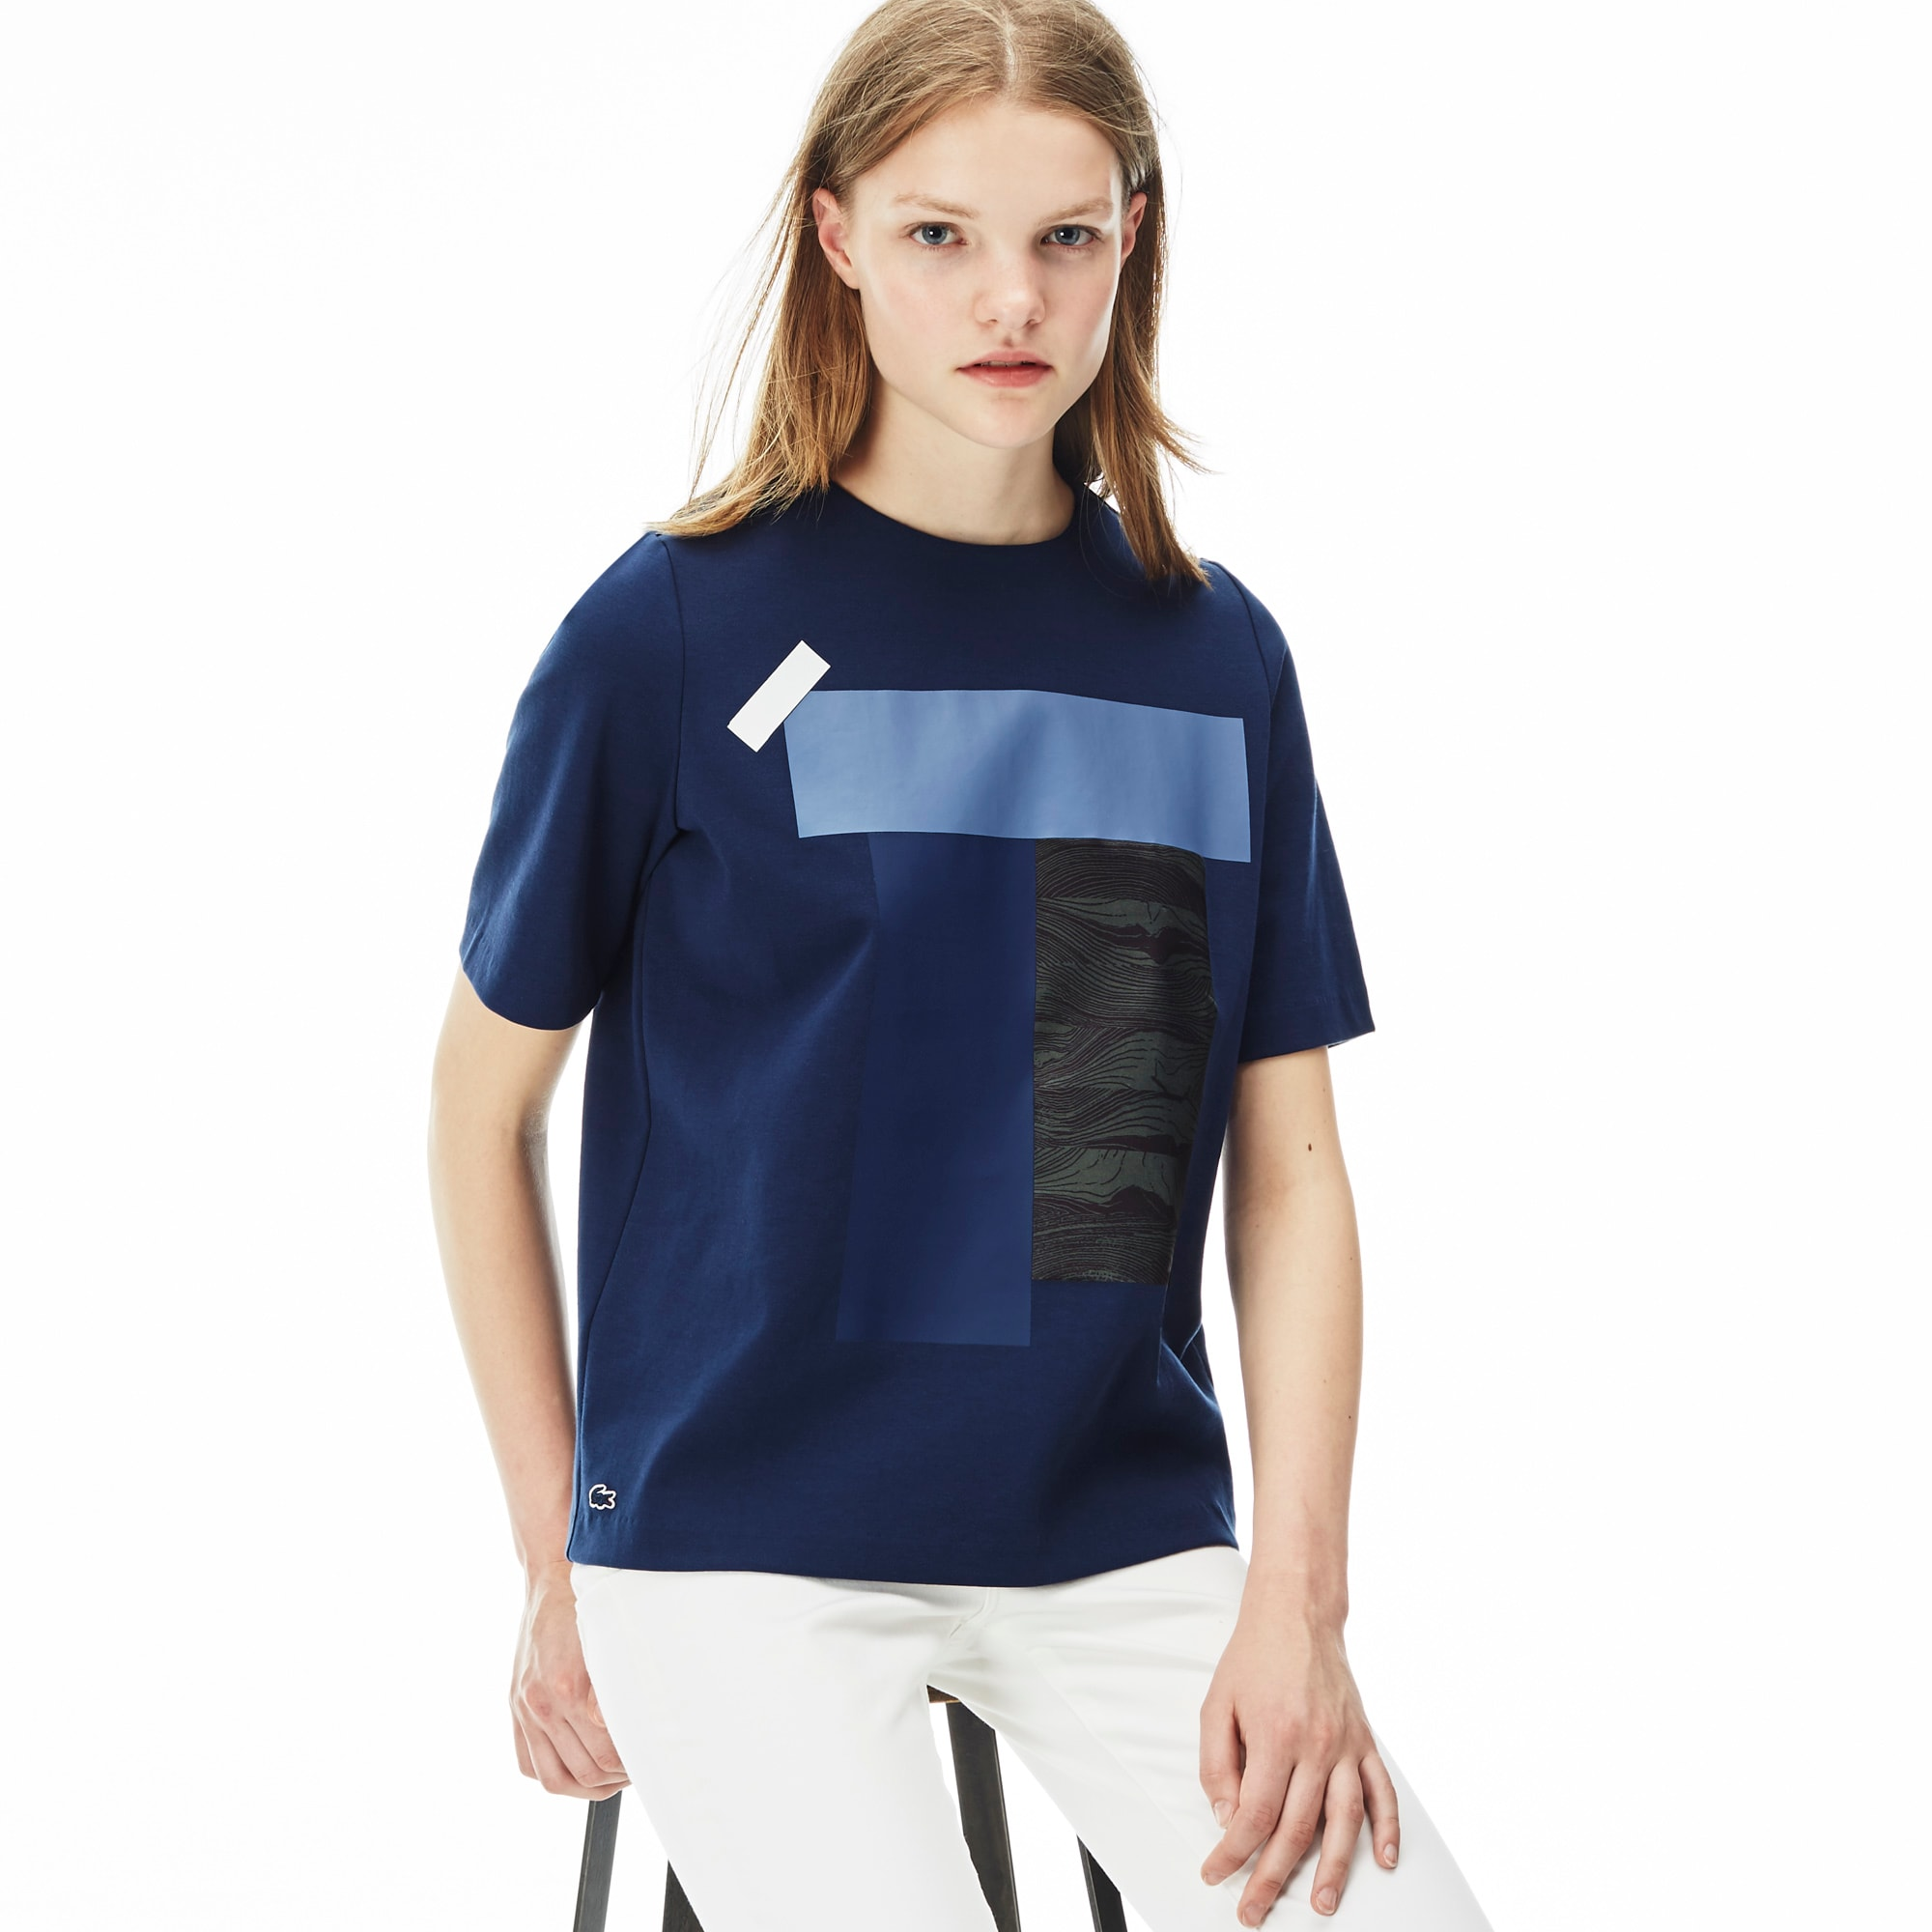 Women's L!VE Crew Neck Colorblock Print T-shirt